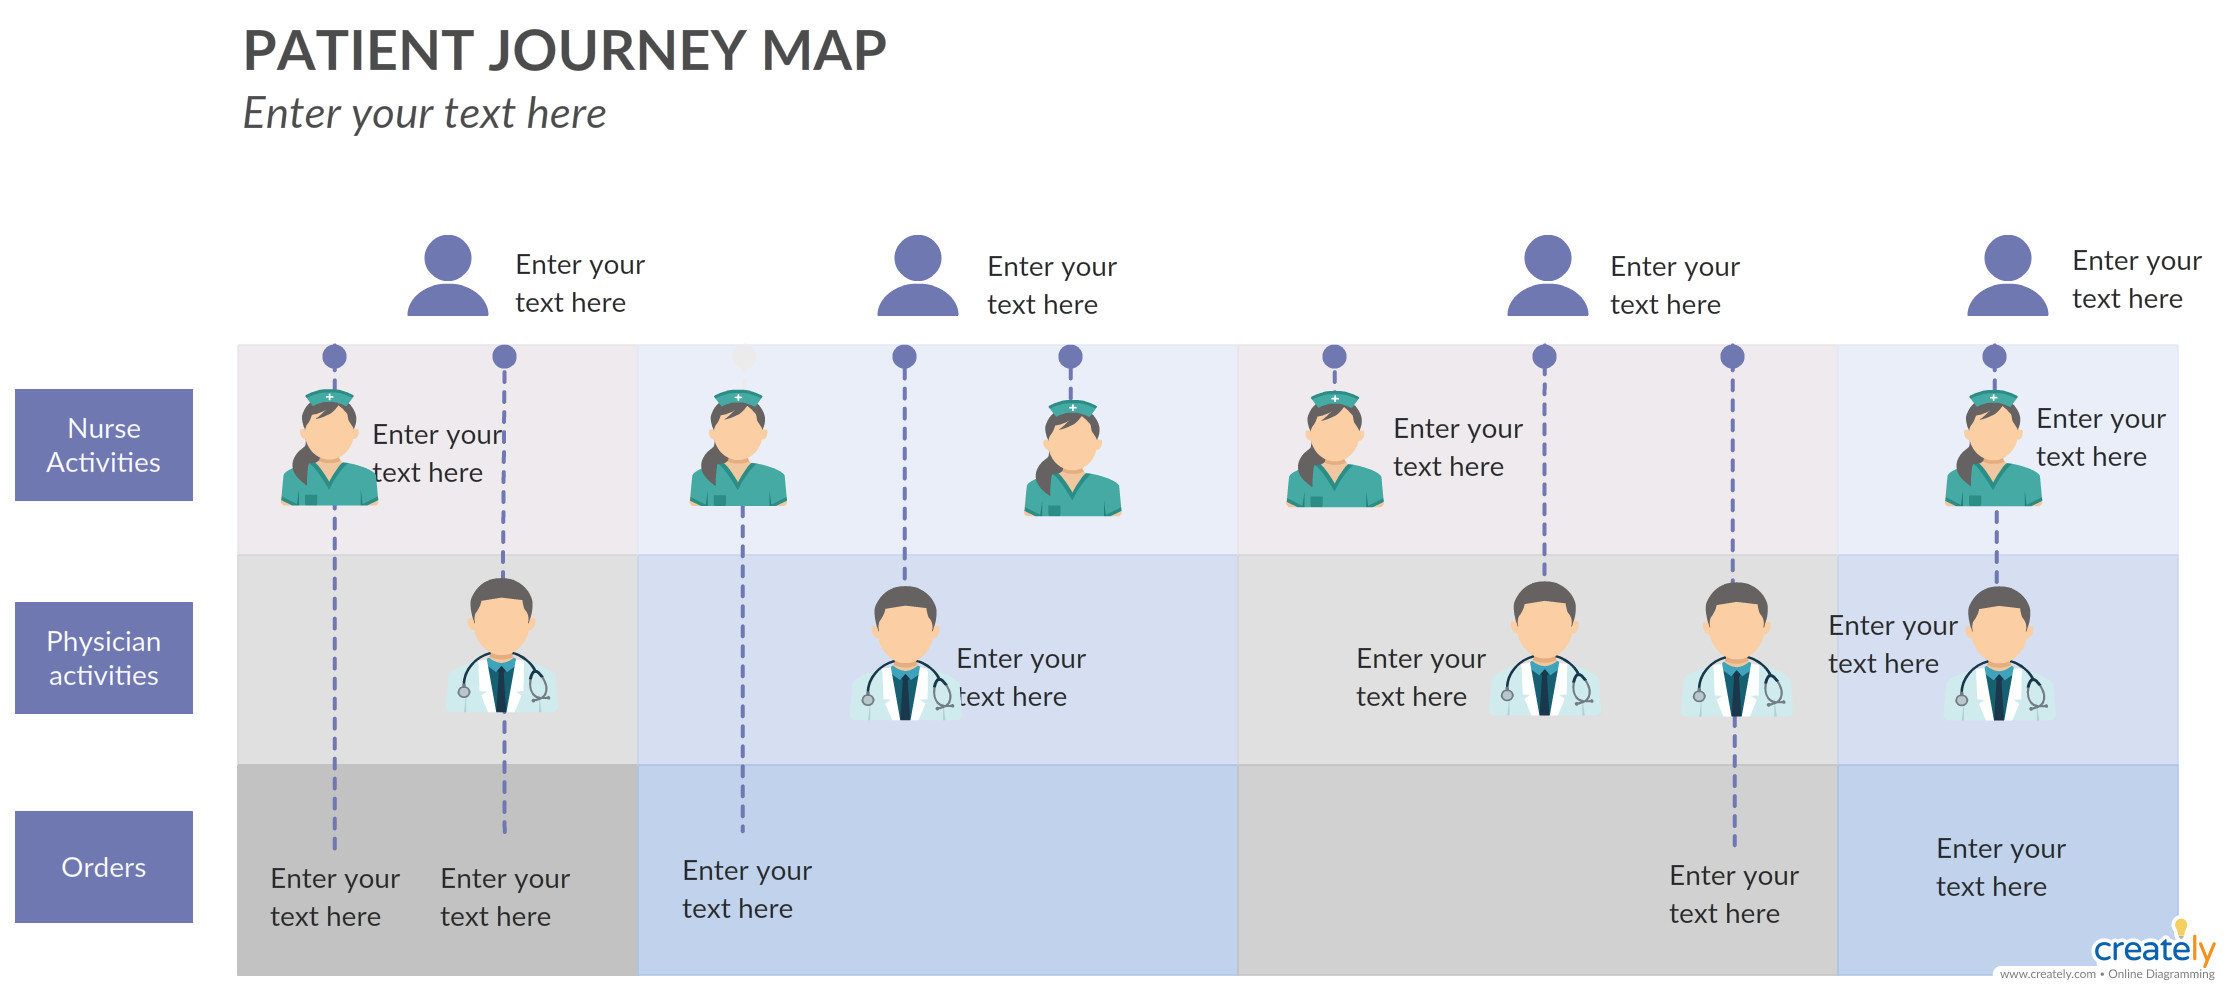 Patient Journey Mapping Template the Patient Journey Map which Outlines All Of the Patient